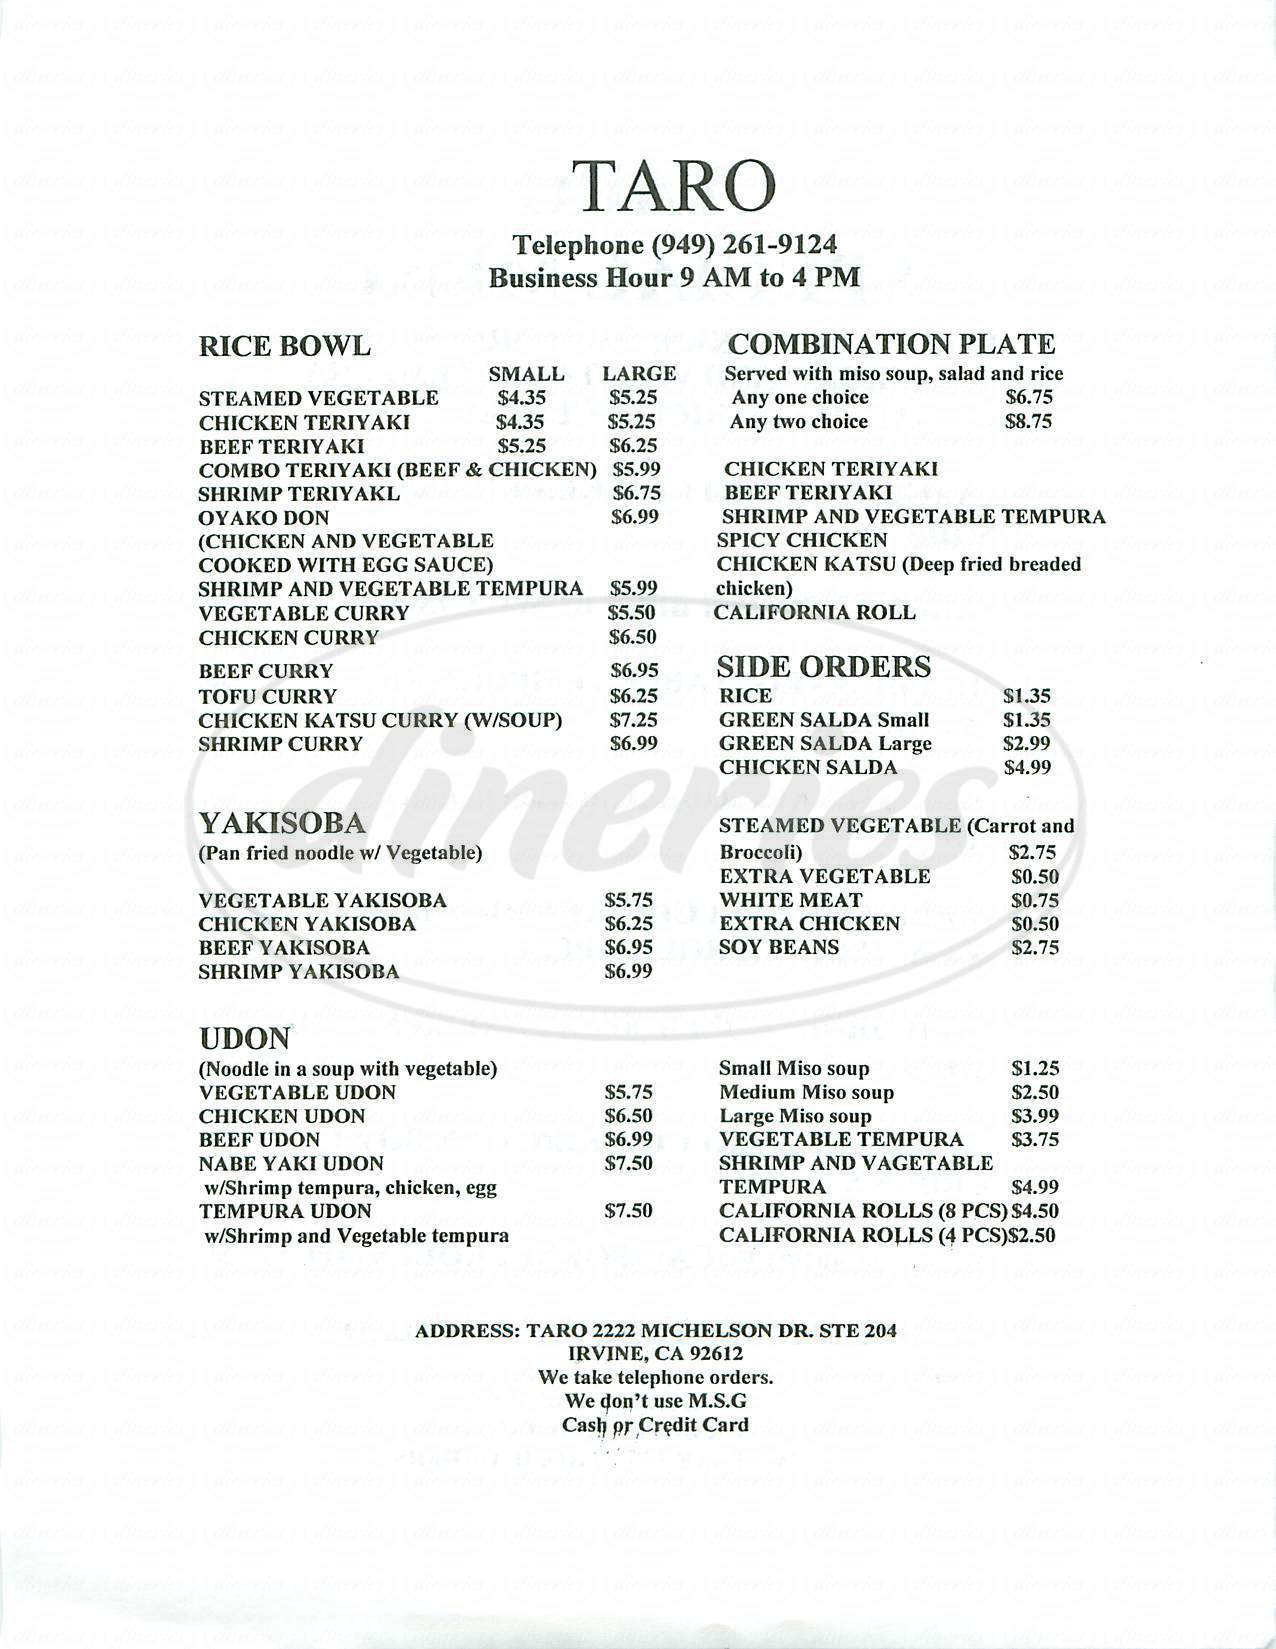 Big menu for Taro, Irvine